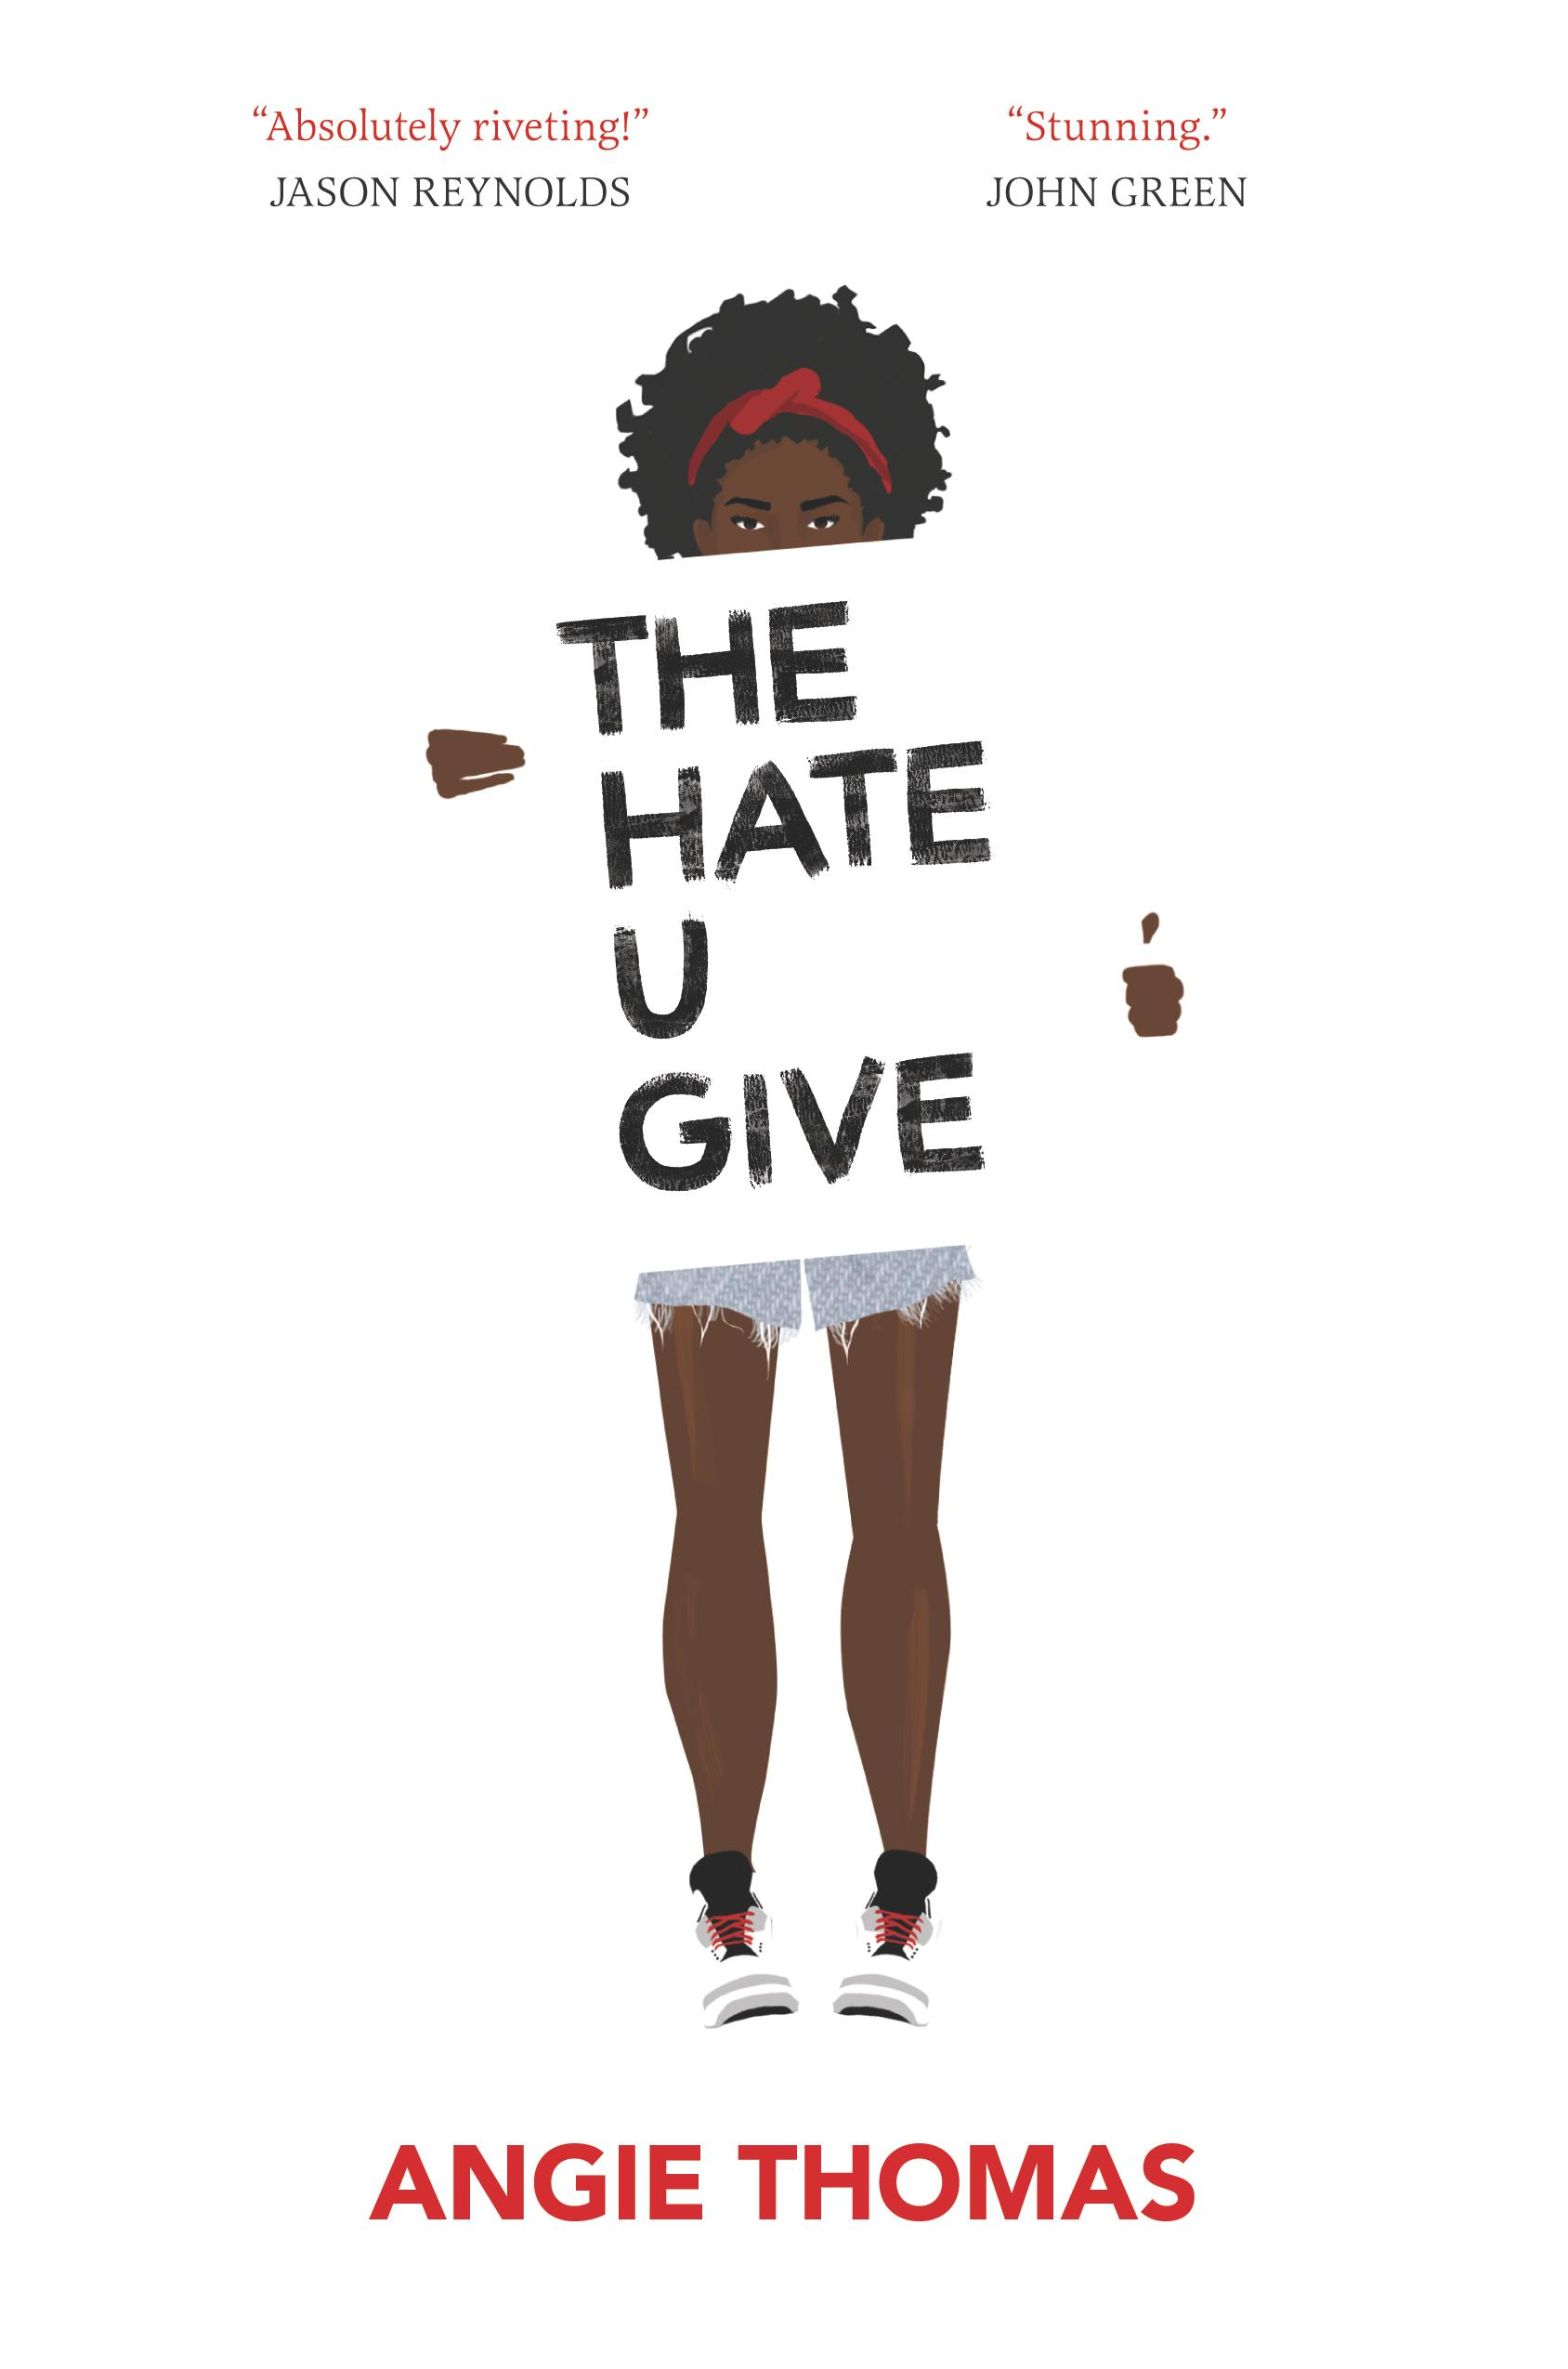 2017 National Book Awards: The Hate U Give by AngieThomas